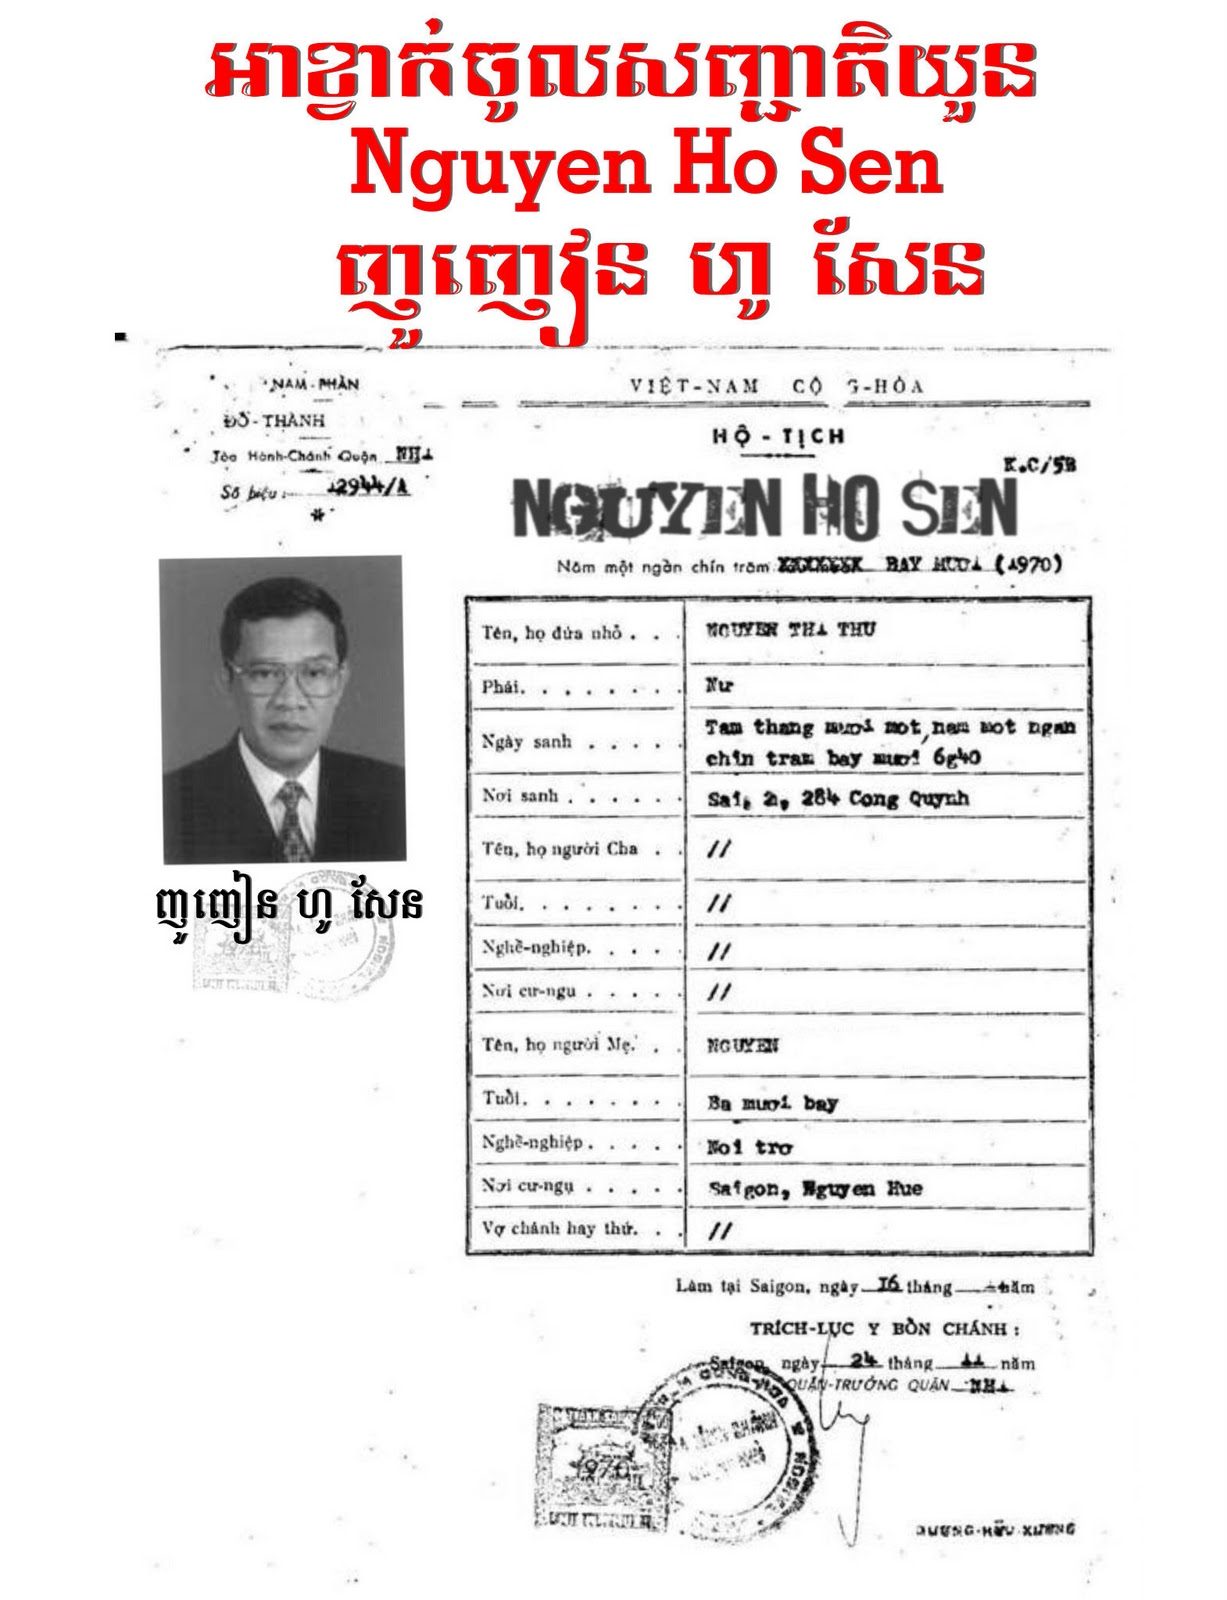 Ki media2 a vietnamese birth certificate for the xtrongman ki media ki media2 a vietnamese birth certificate for the xtrongman aiddatafo Image collections